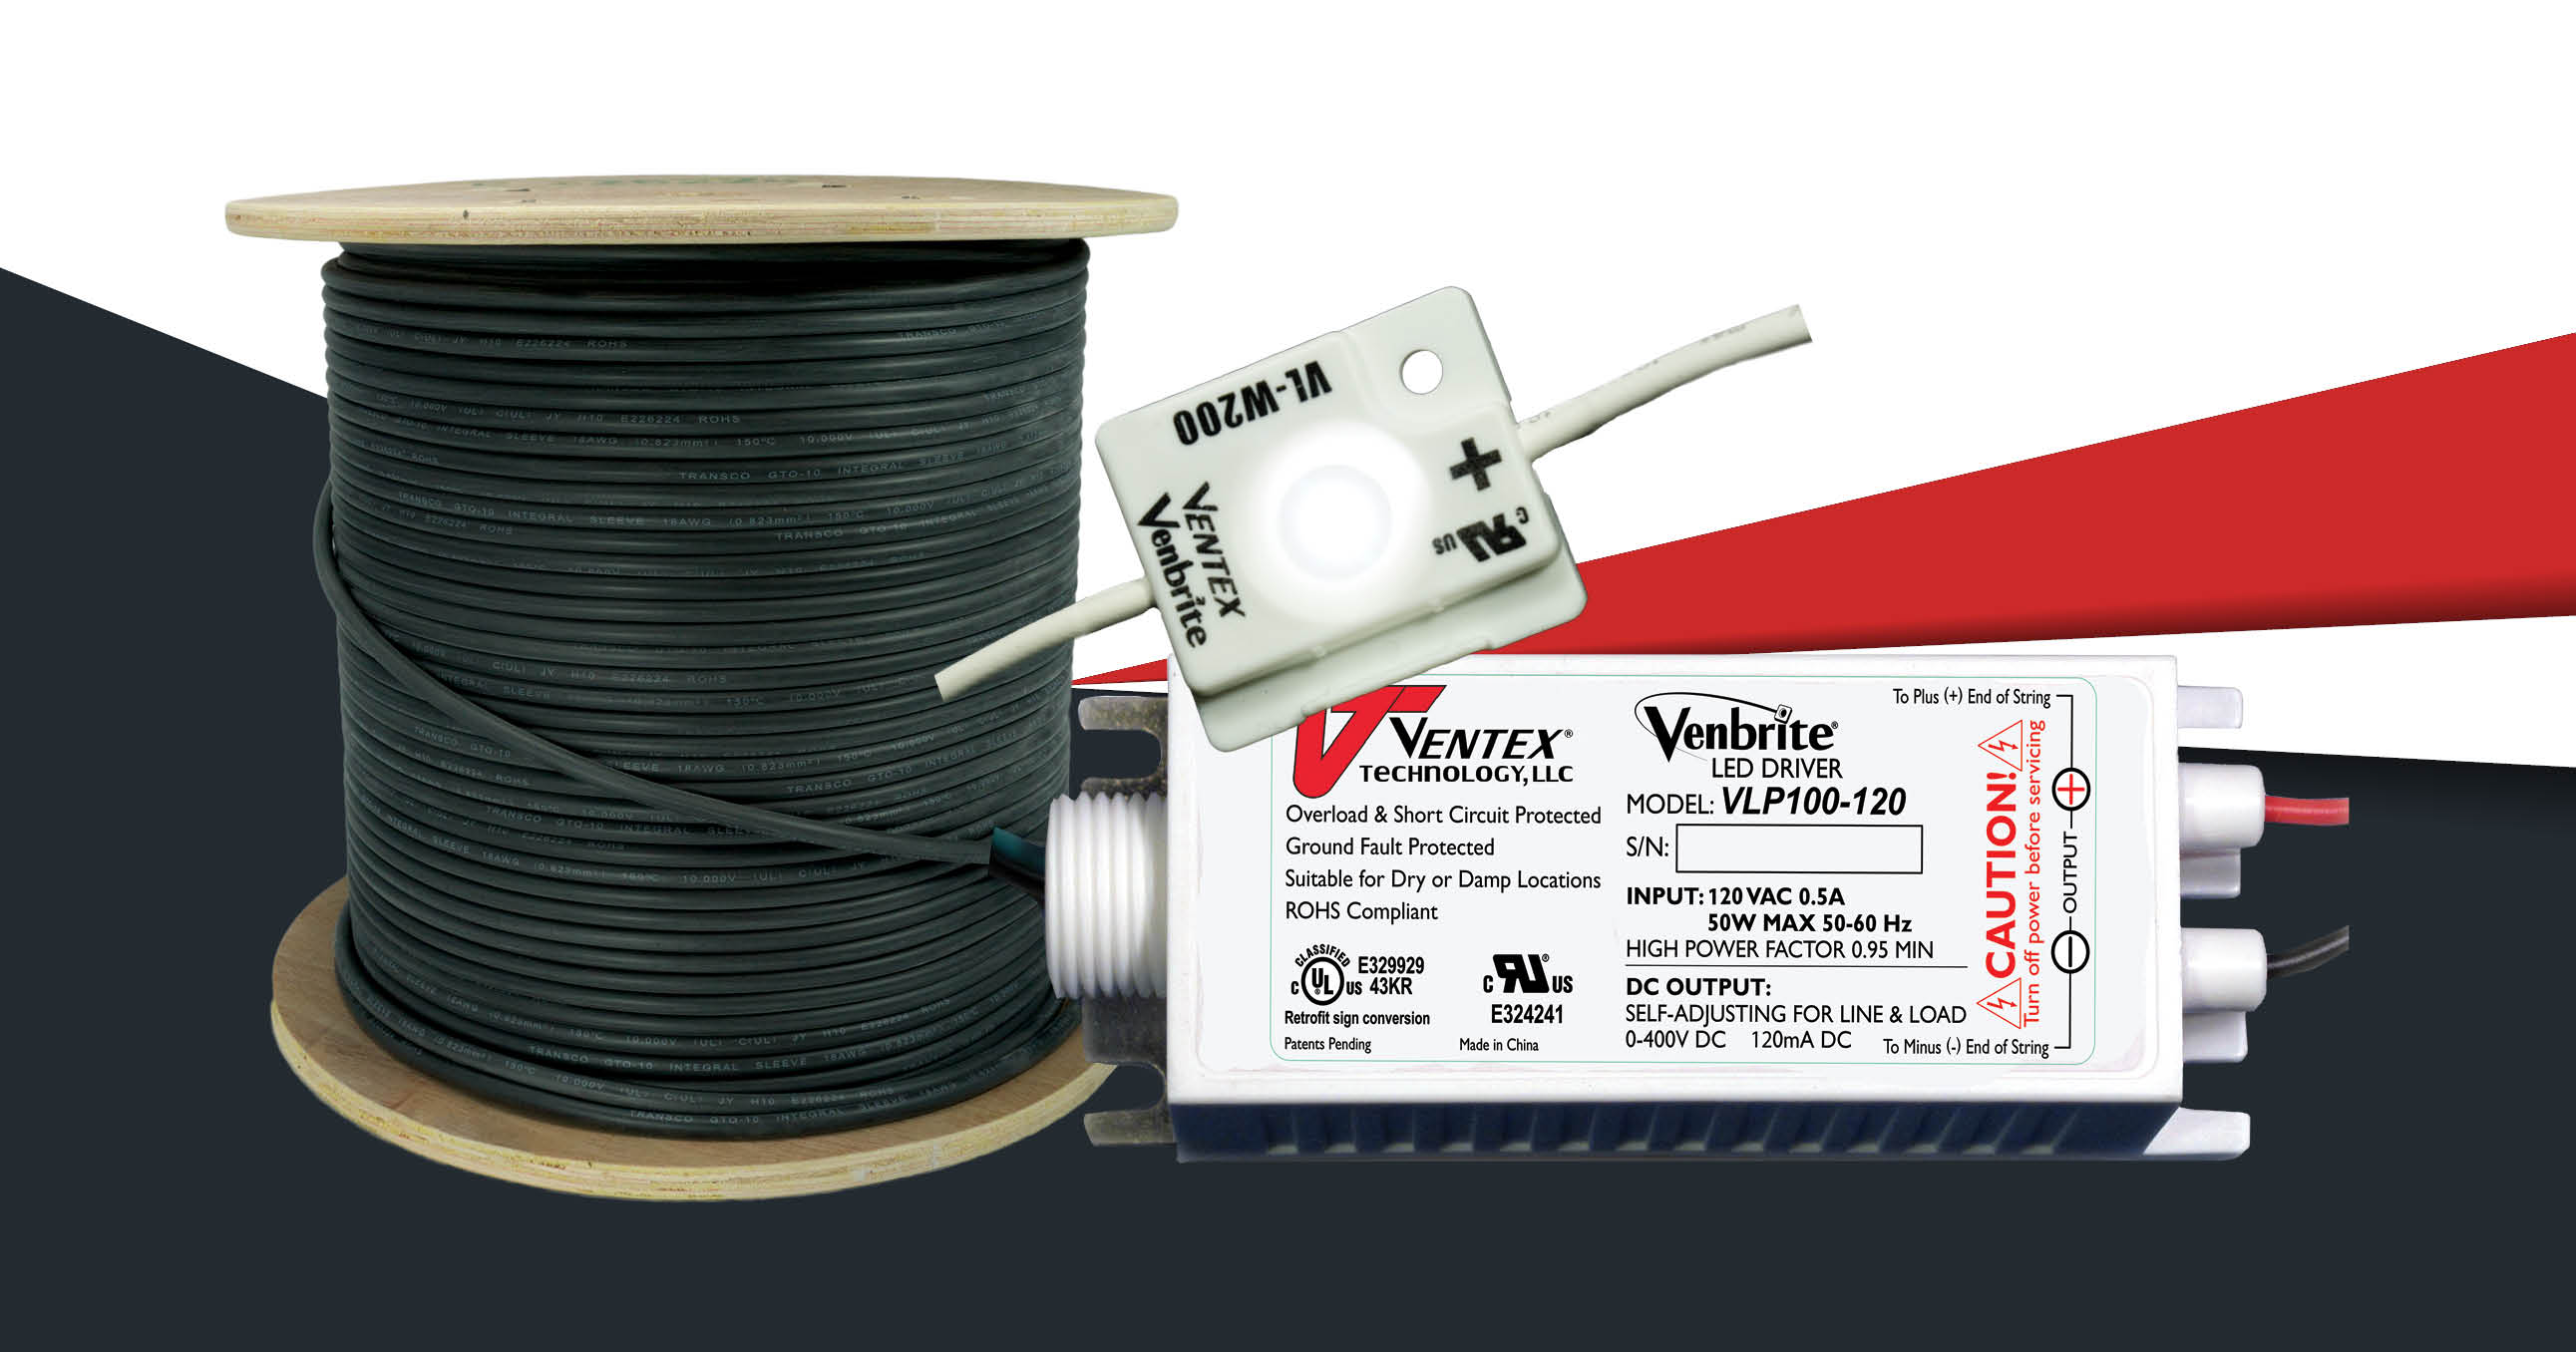 Ventex Technology Llc Use Existing Gto Wiring Conduit At The End Of Wire To Switch Diagram